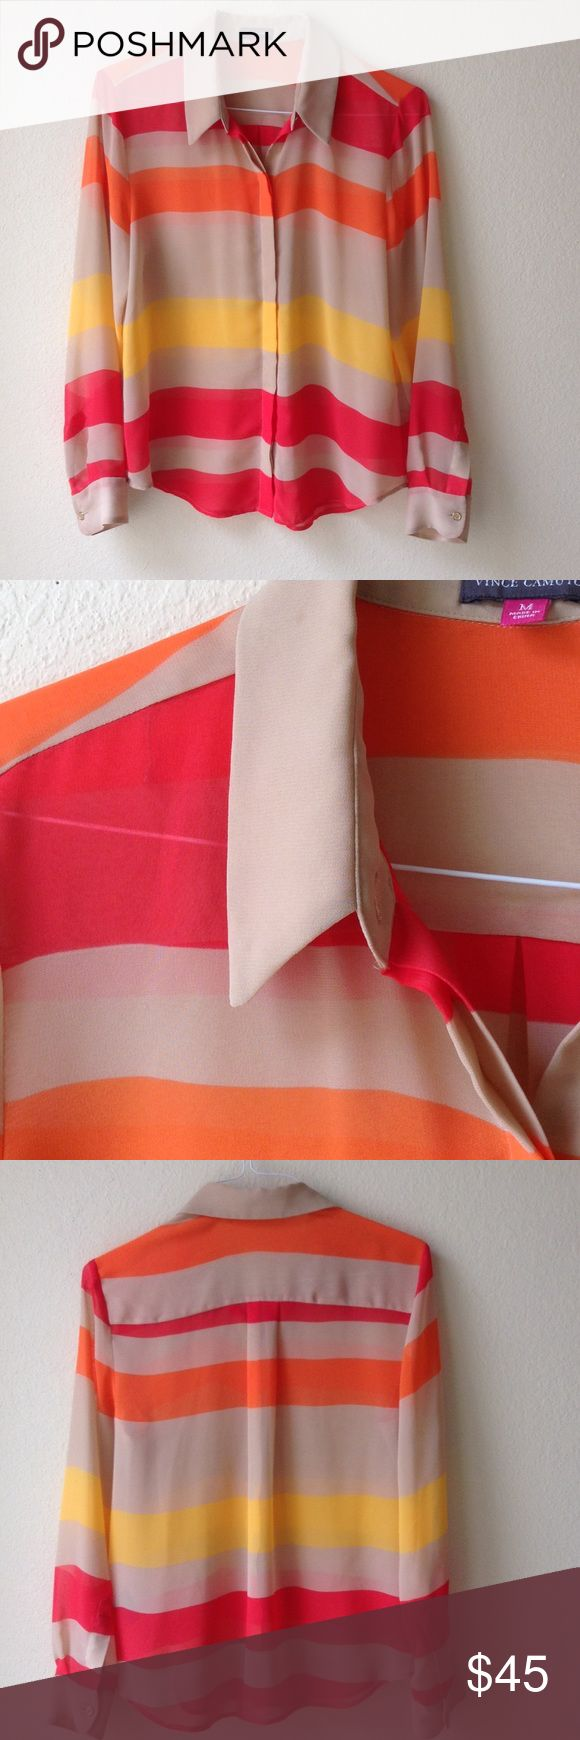 Vince Camuto sheer striped blouse with beige cami Striped sheer shirt with cami. Hidden buttons really cute!!! Pinks orange yellow Vince Camuto Tops Blouses